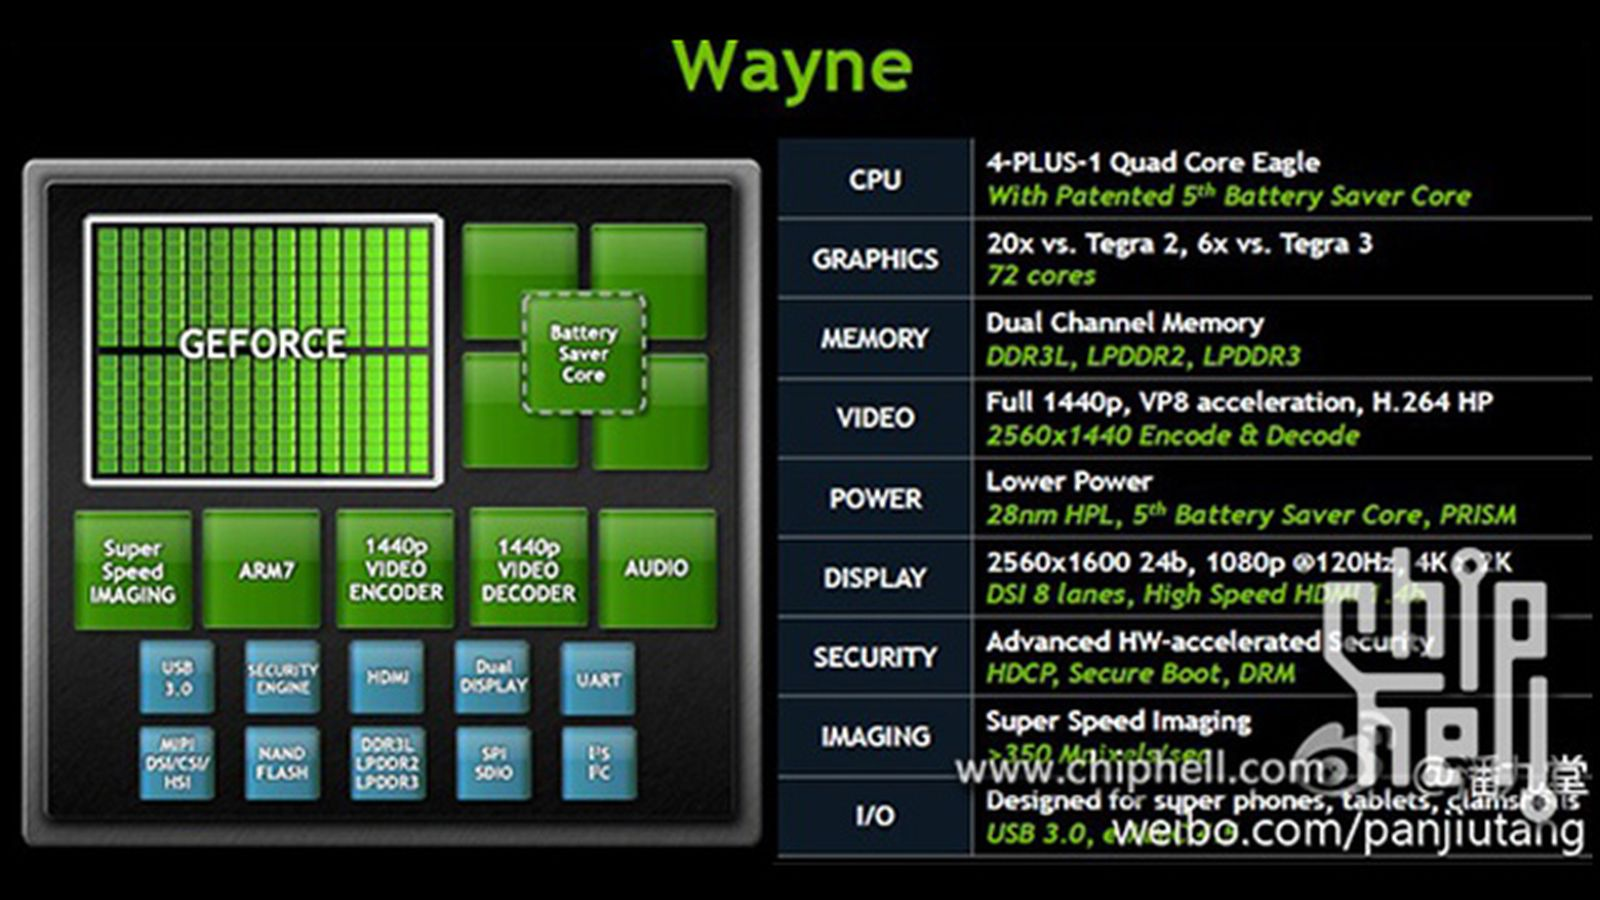 Nvidia S Tegra 4 Leaks With 72 Core Graphics For Your